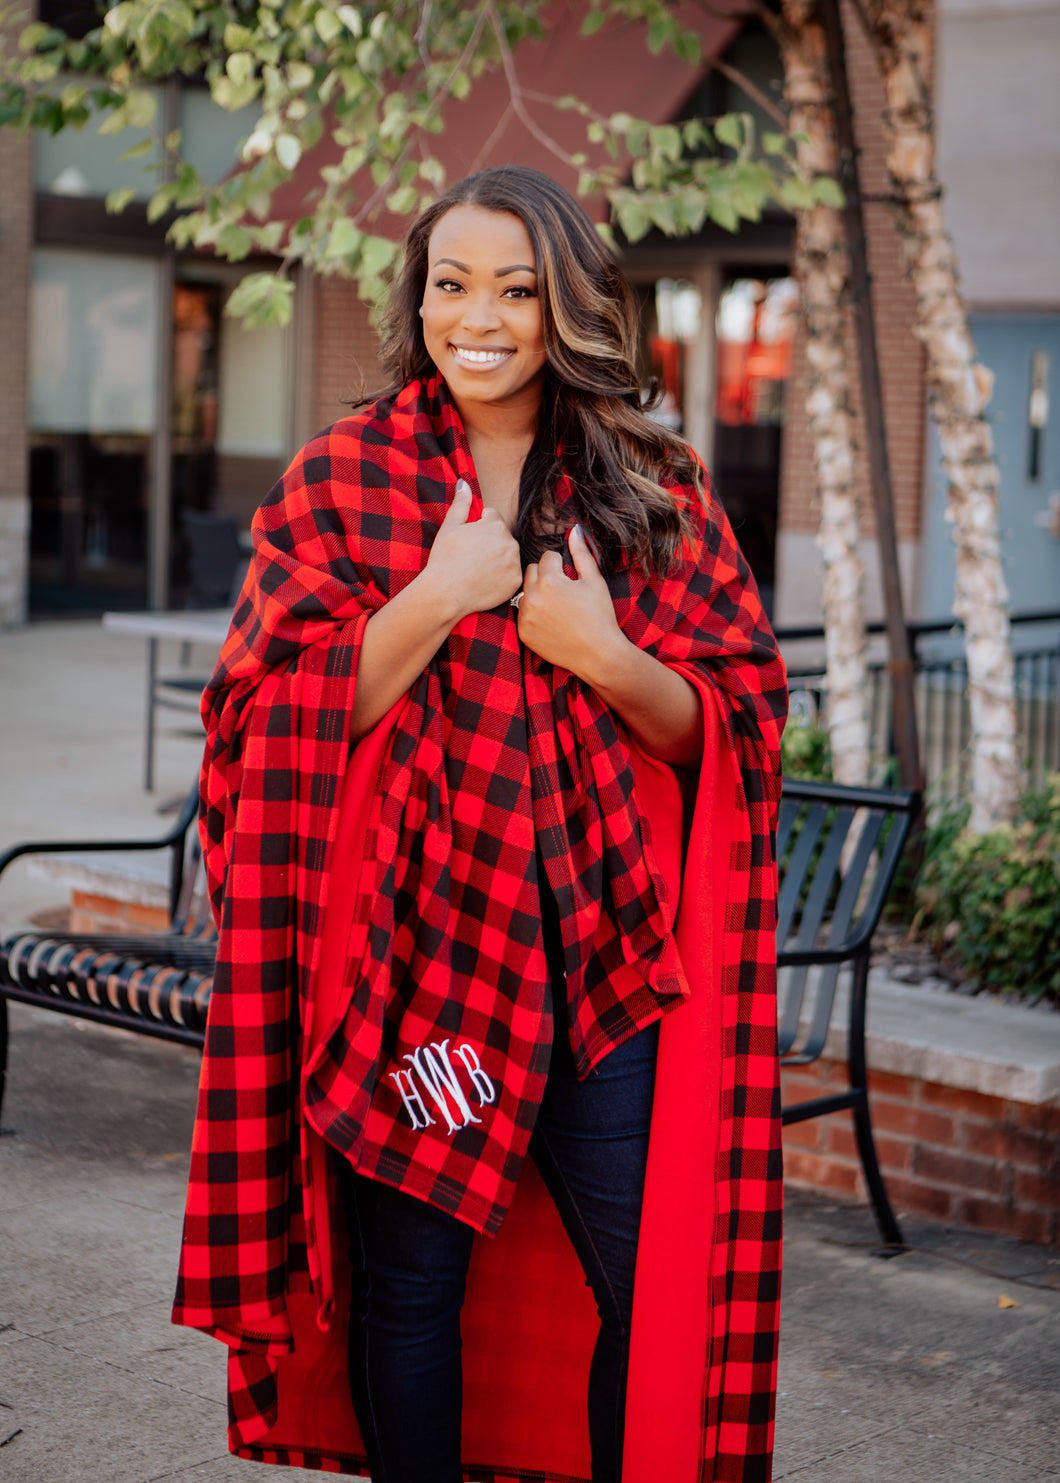 Monogrammed Blanket Plaid and Solid Colors